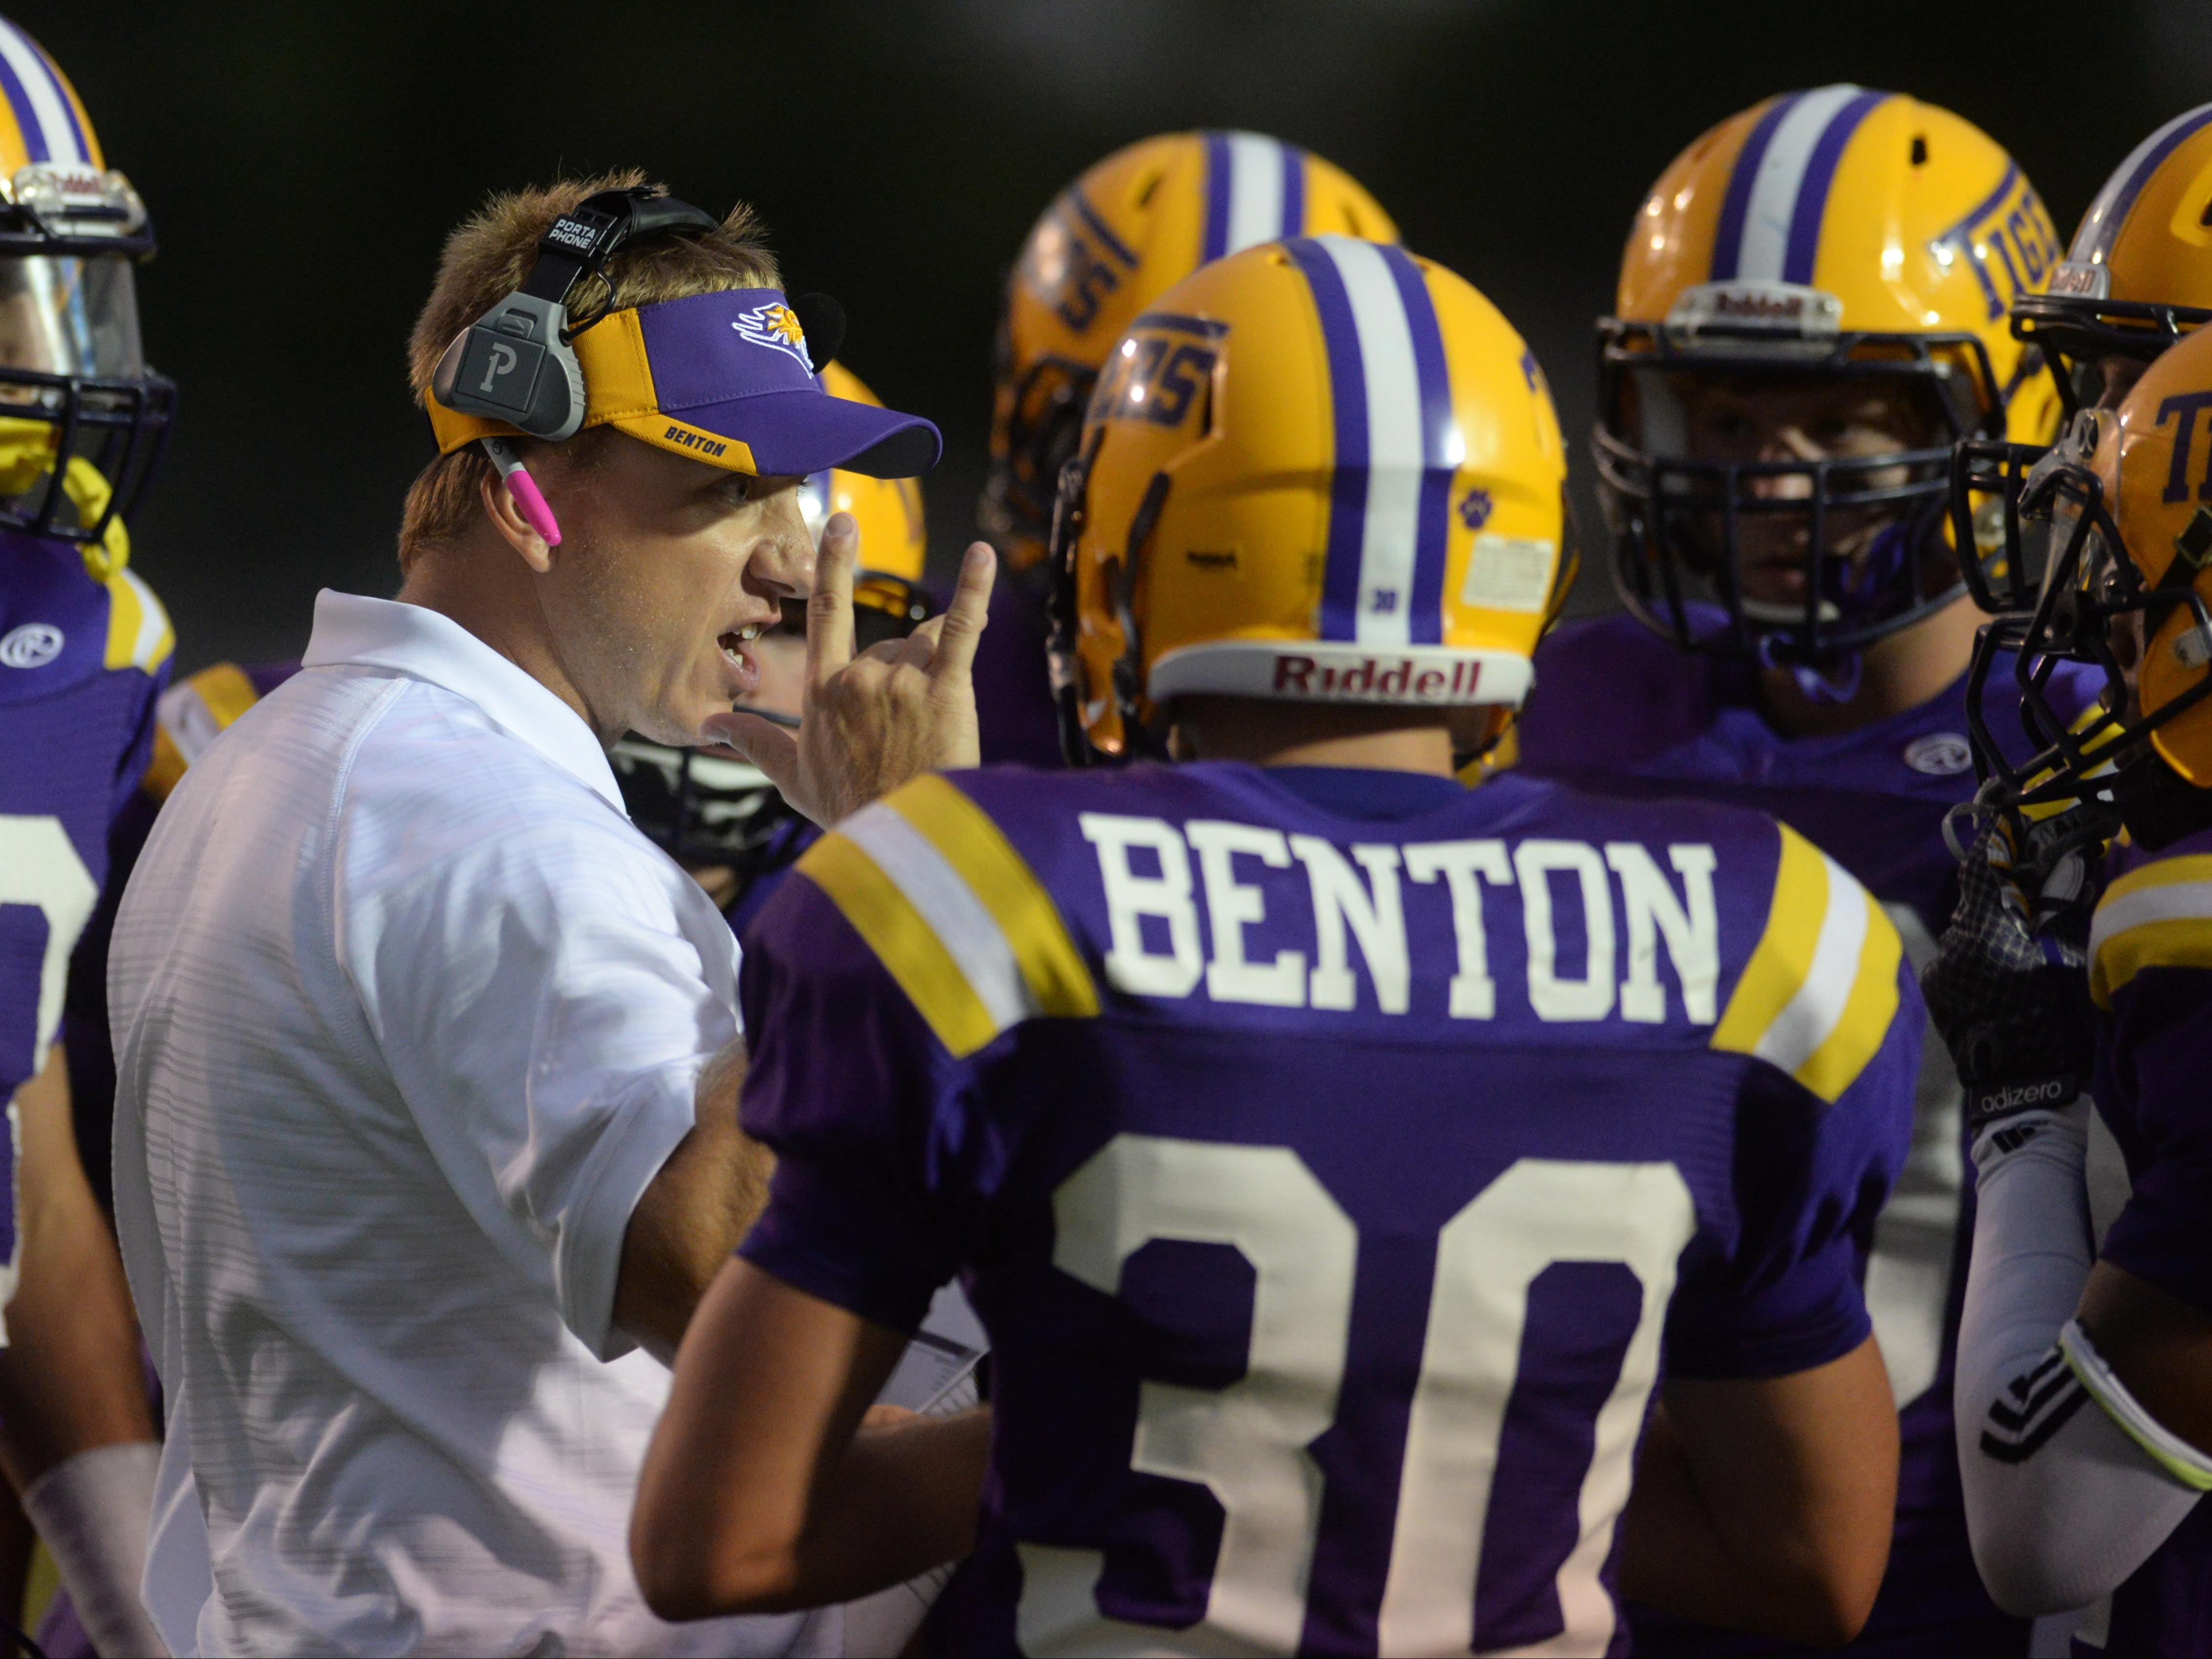 Benton's head coach Reynolds Moore talks with his team in an earlier game.